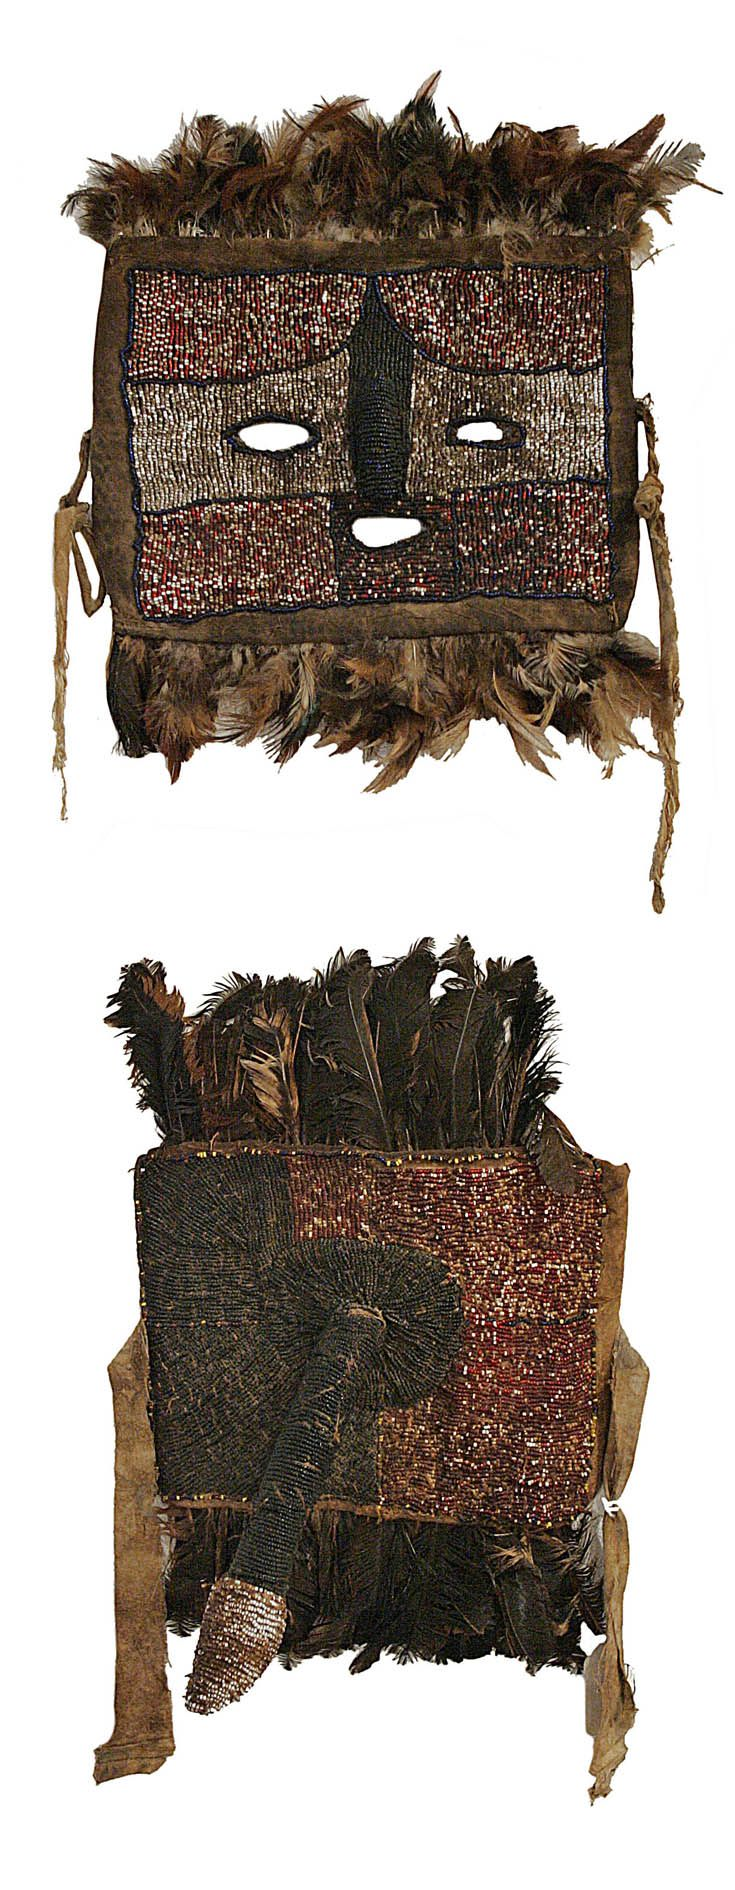 Africa | Initiation mask and loin cover from the Tabwa people of DR Congo | Textile, glass beads, feathers and leather